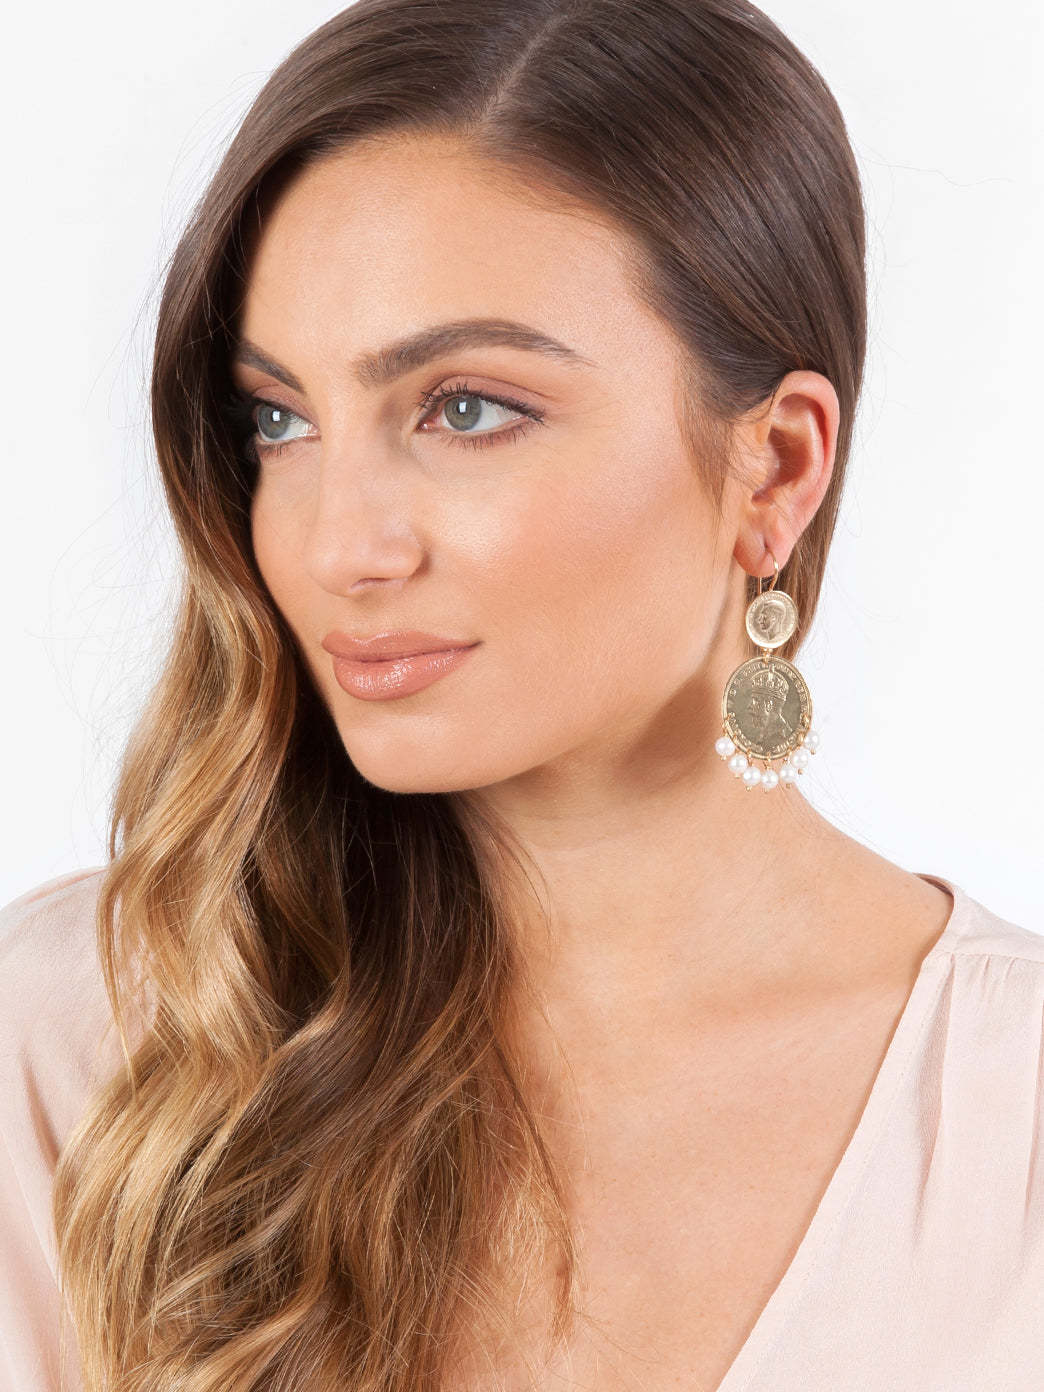 Fiorina Jewellery Gold Marrakesh Earrings Model